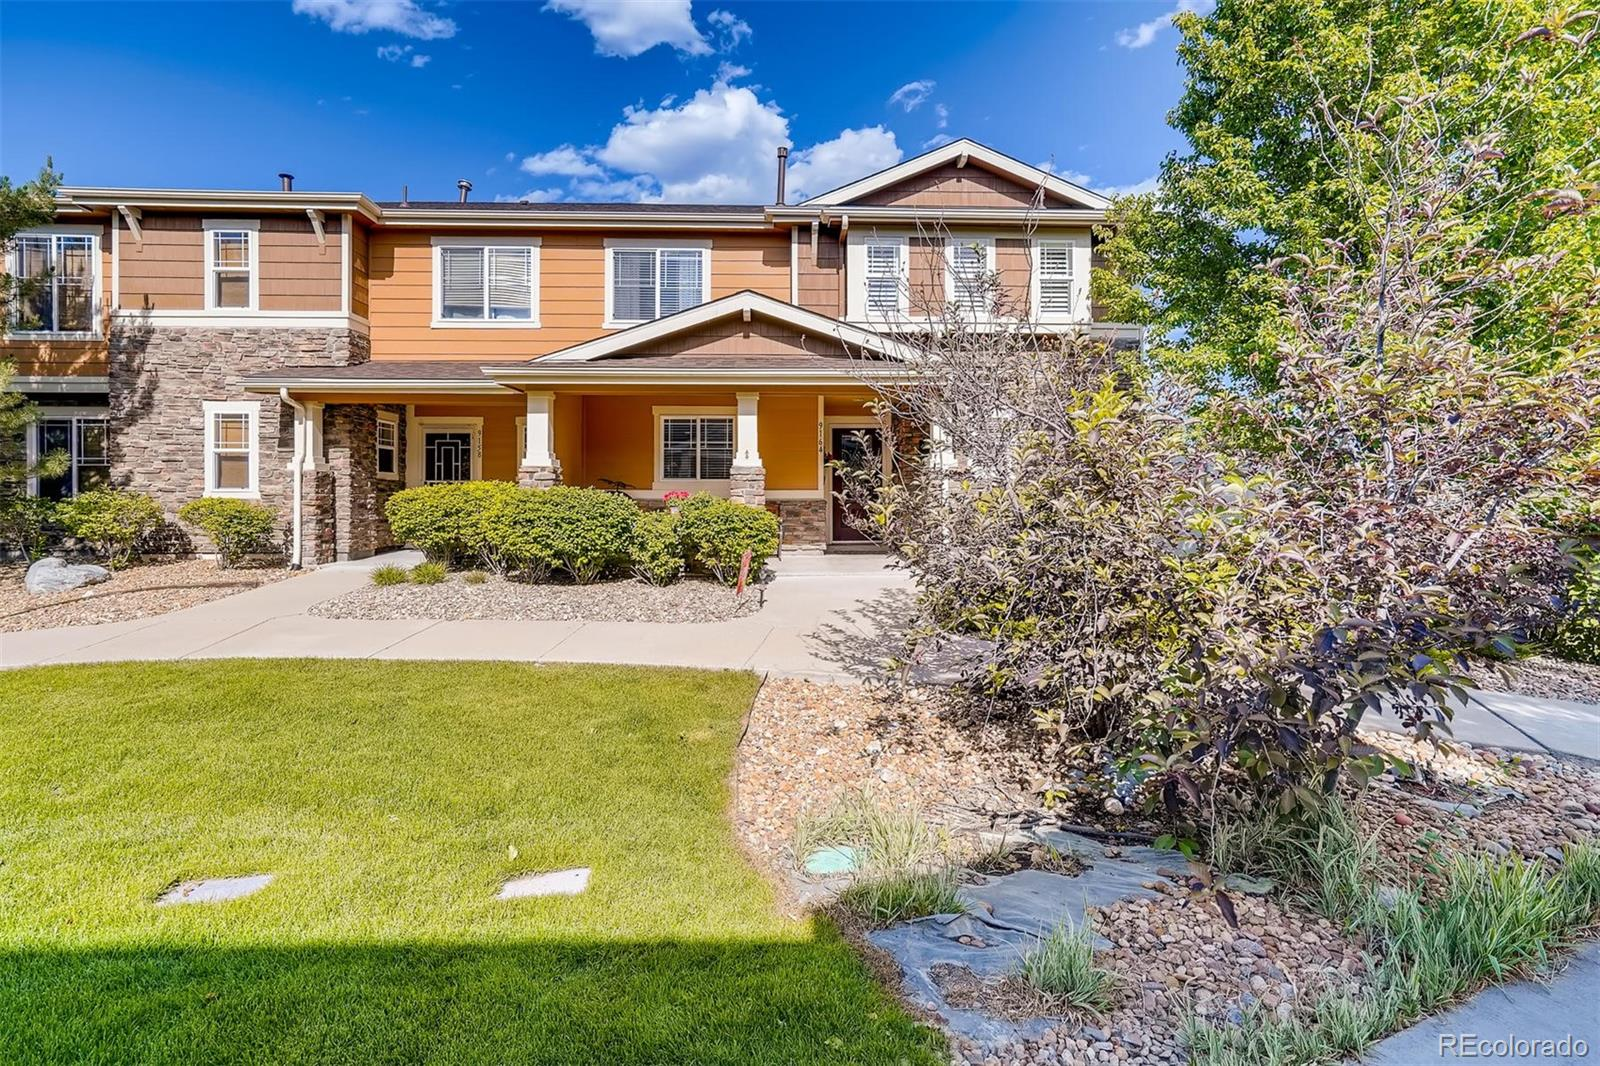 9164 W 104th Circle Property Photo - Westminster, CO real estate listing